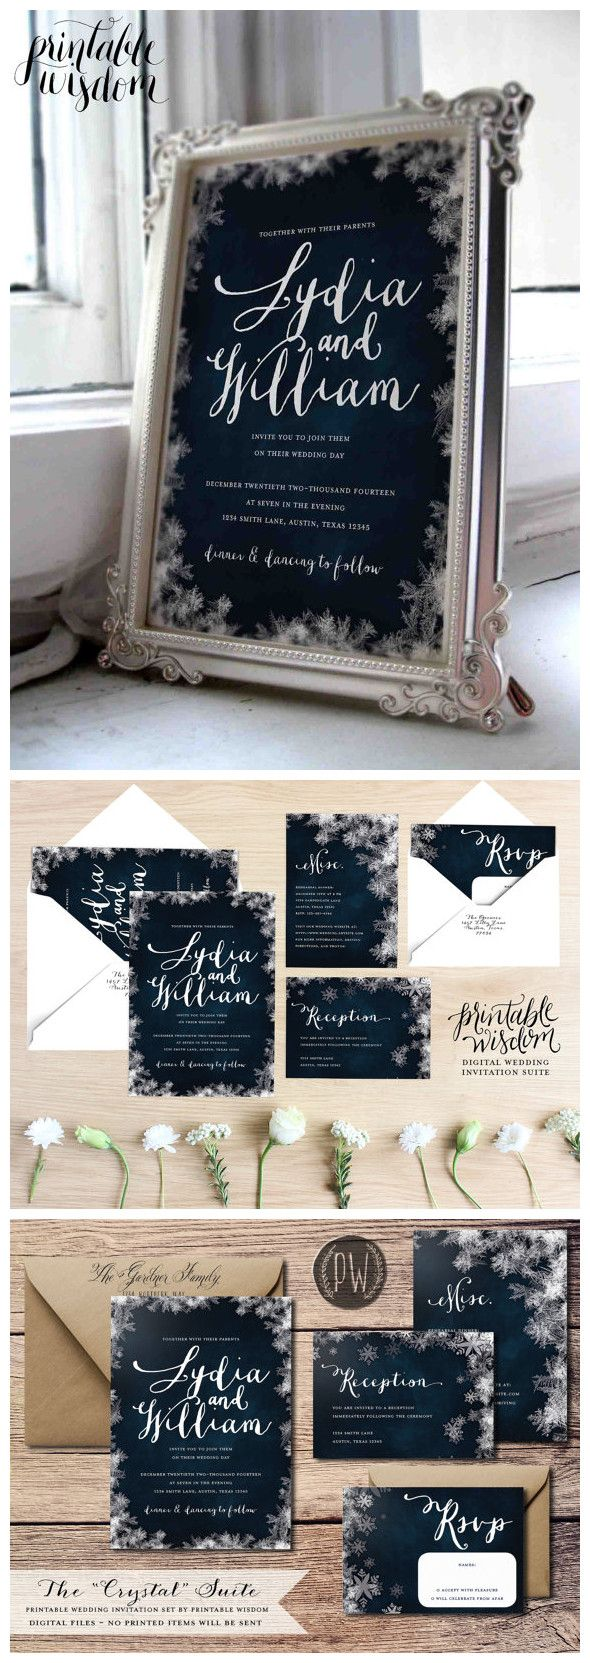 Popular Wedding Invitations Theme and Color Ideas